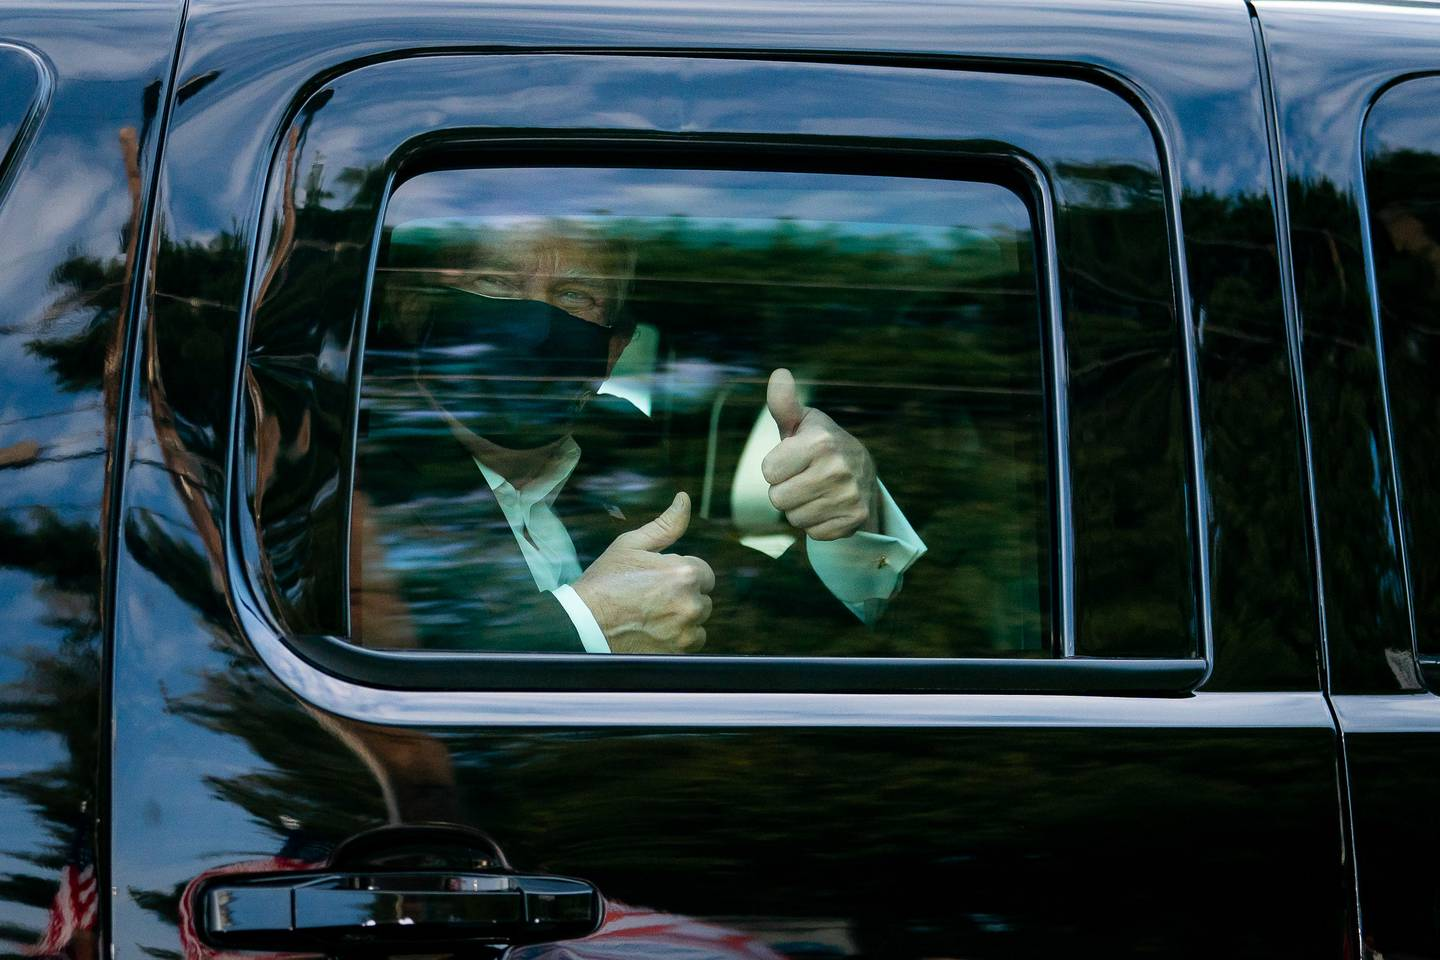 President Donald Trump greets supporters during a drive by outside of Walter Reed National Military Medical Center on Oct. 4, 2020, in Bethesda, Md.